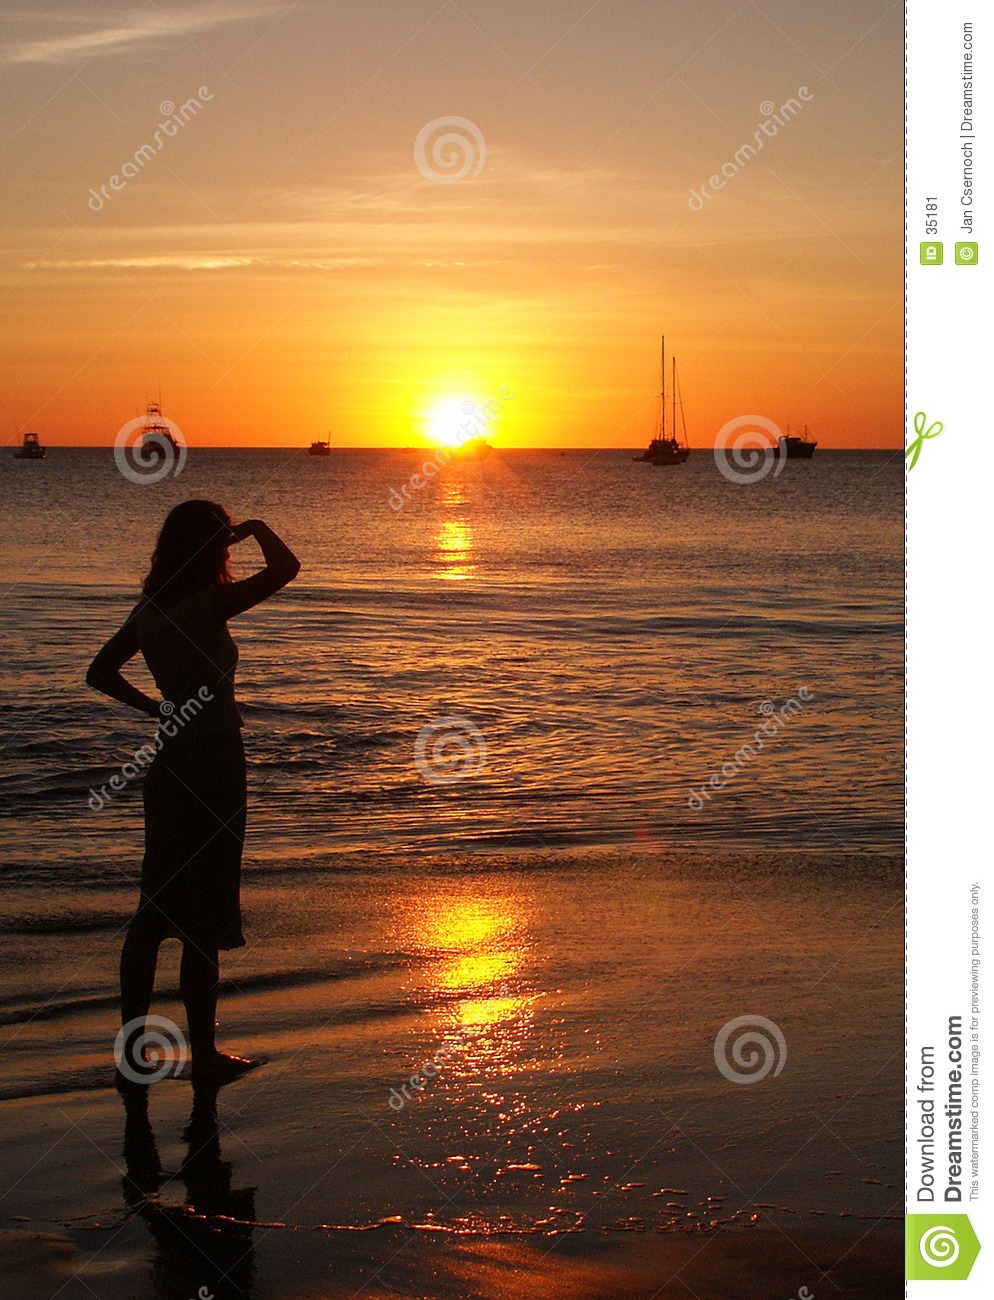 Woman lit by the setting sun